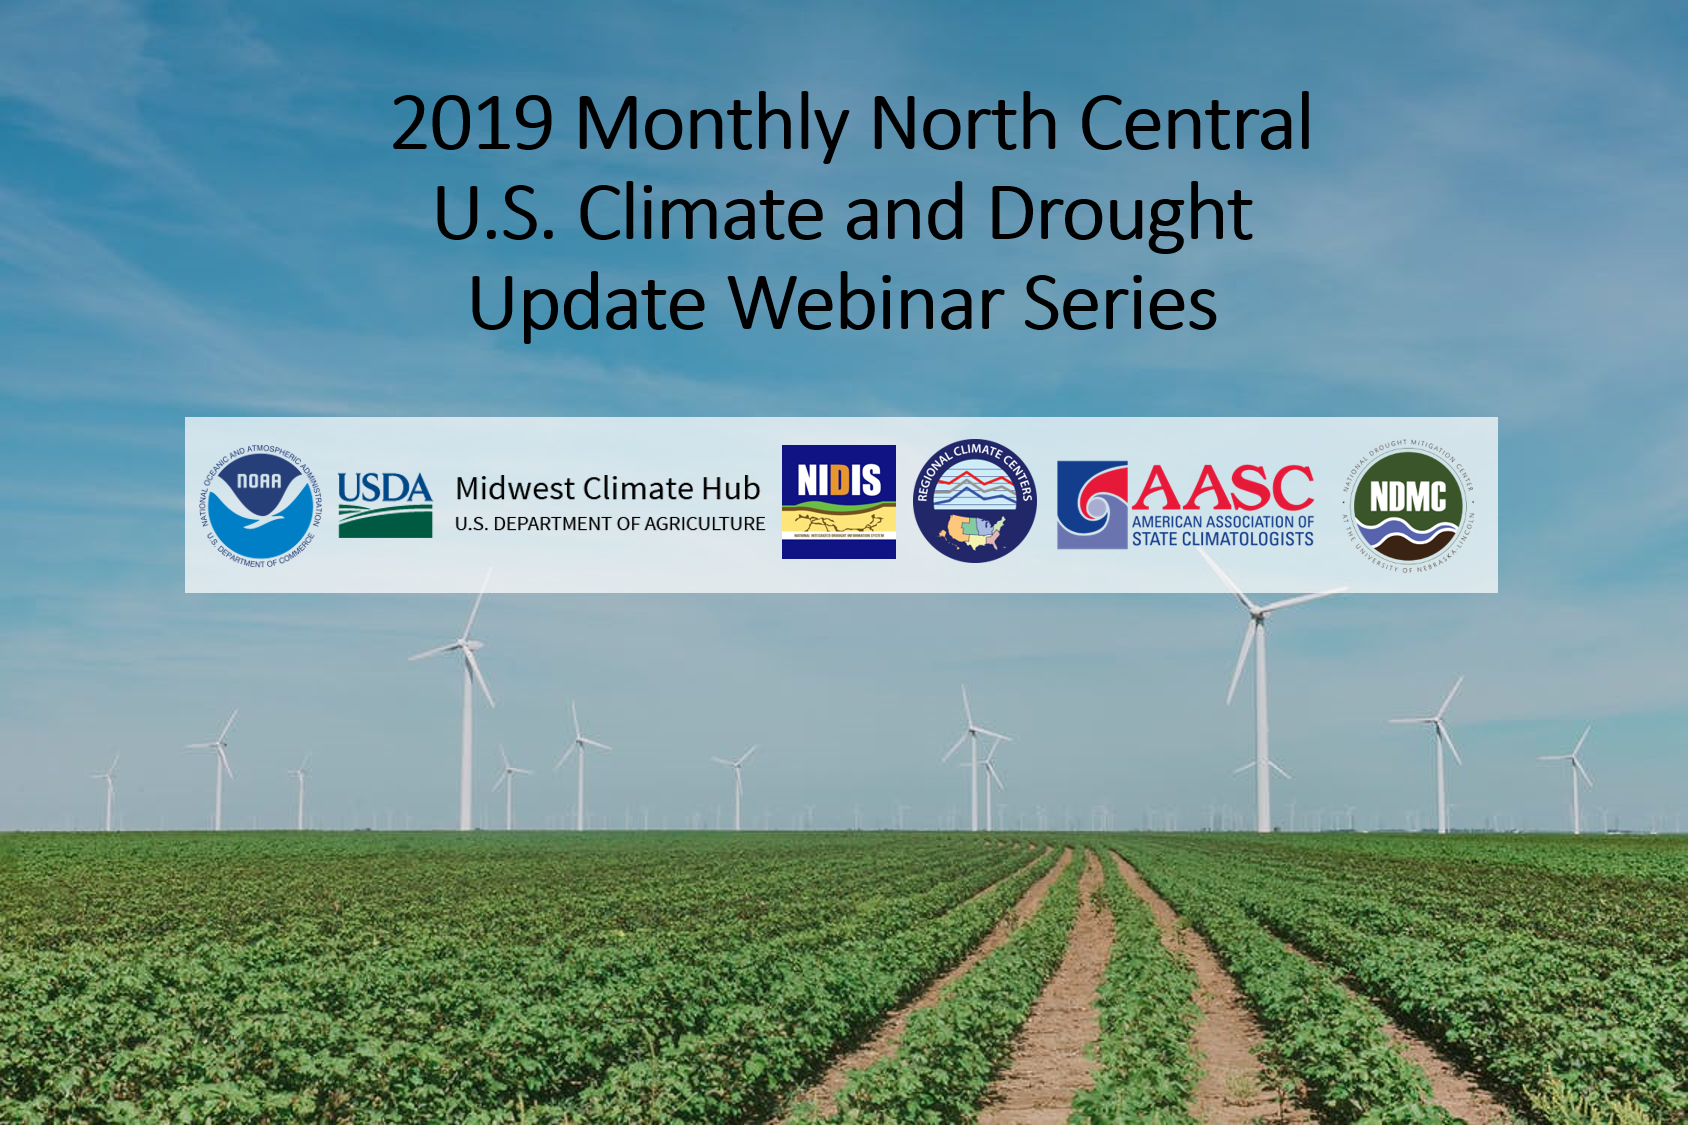 2019 Monthly North Central U.S. Climate and Drought Update Webinar